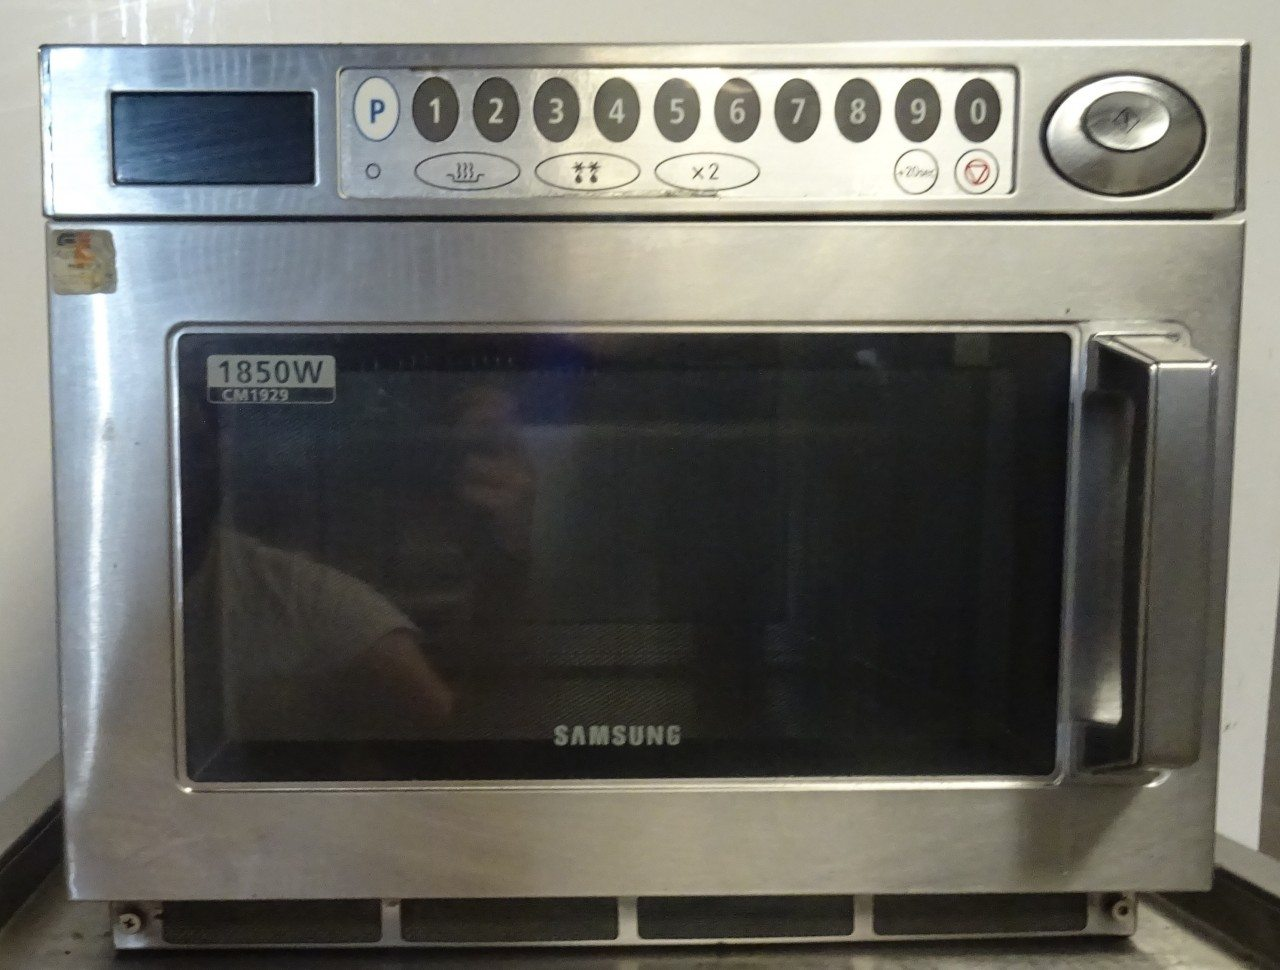 Samsung 1800W Commercial Microwave